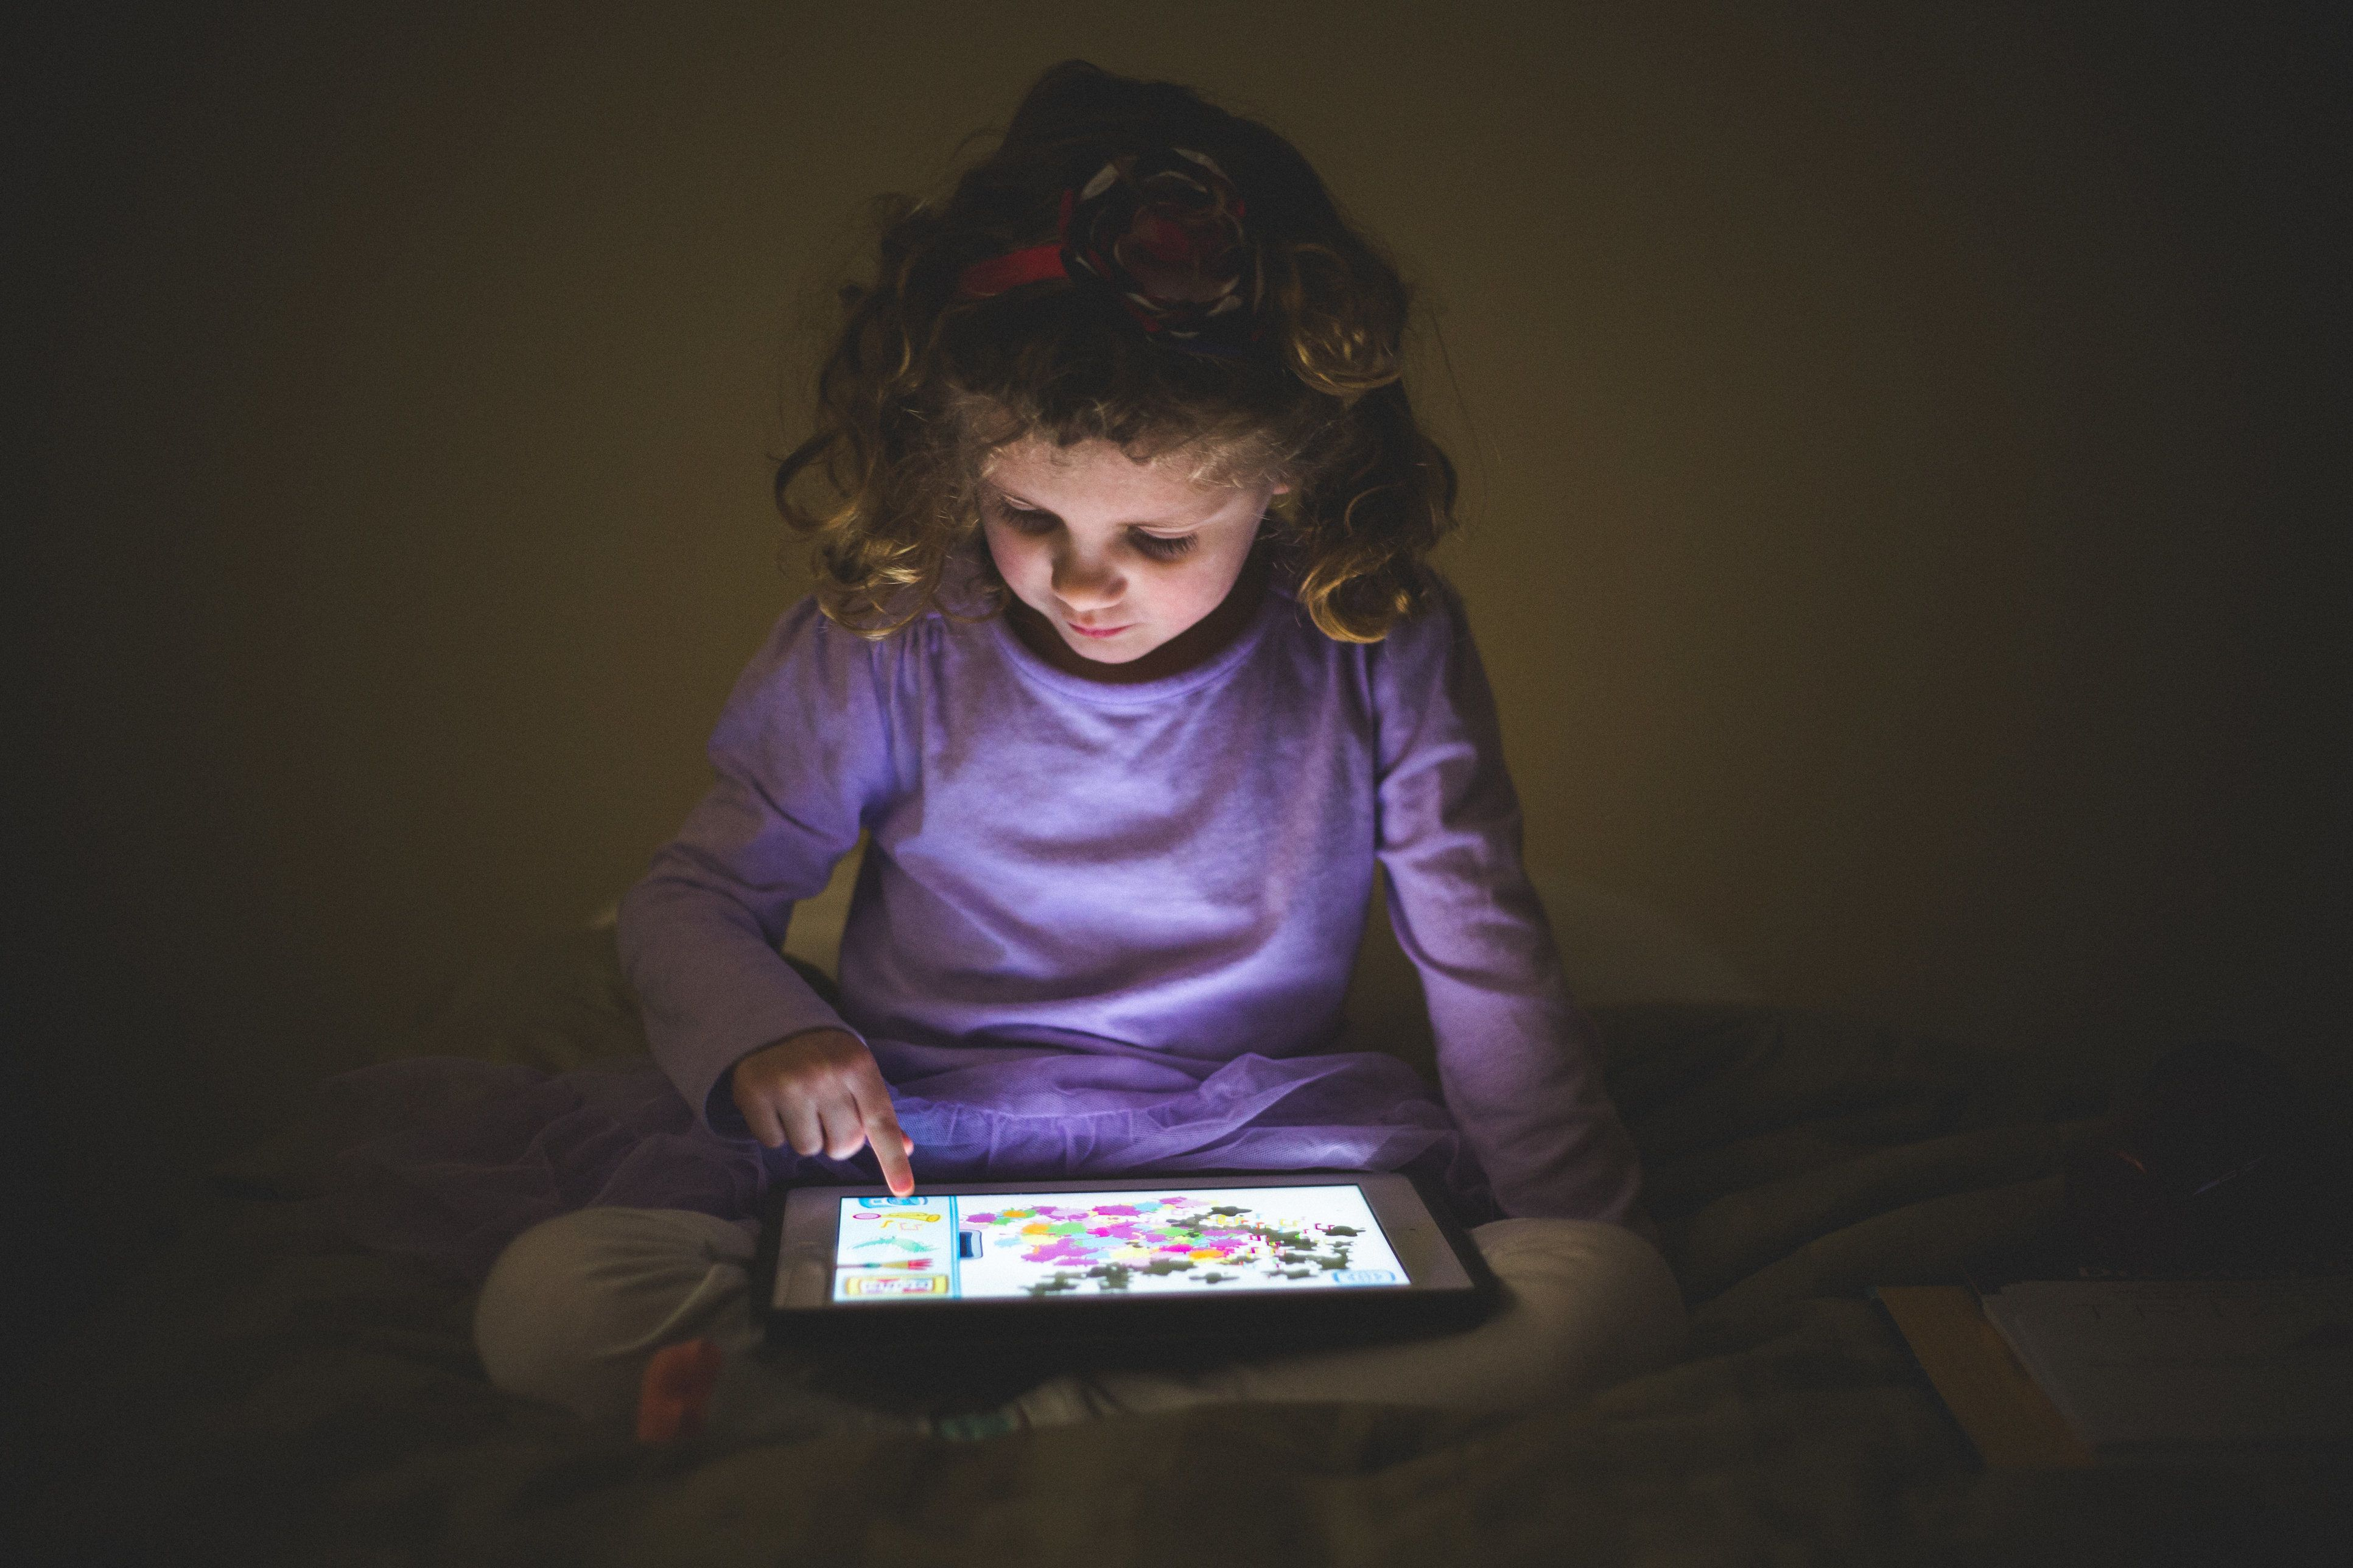 Little girl plays with a digital tablet in a dark room, the light from the screen illuminates her face.